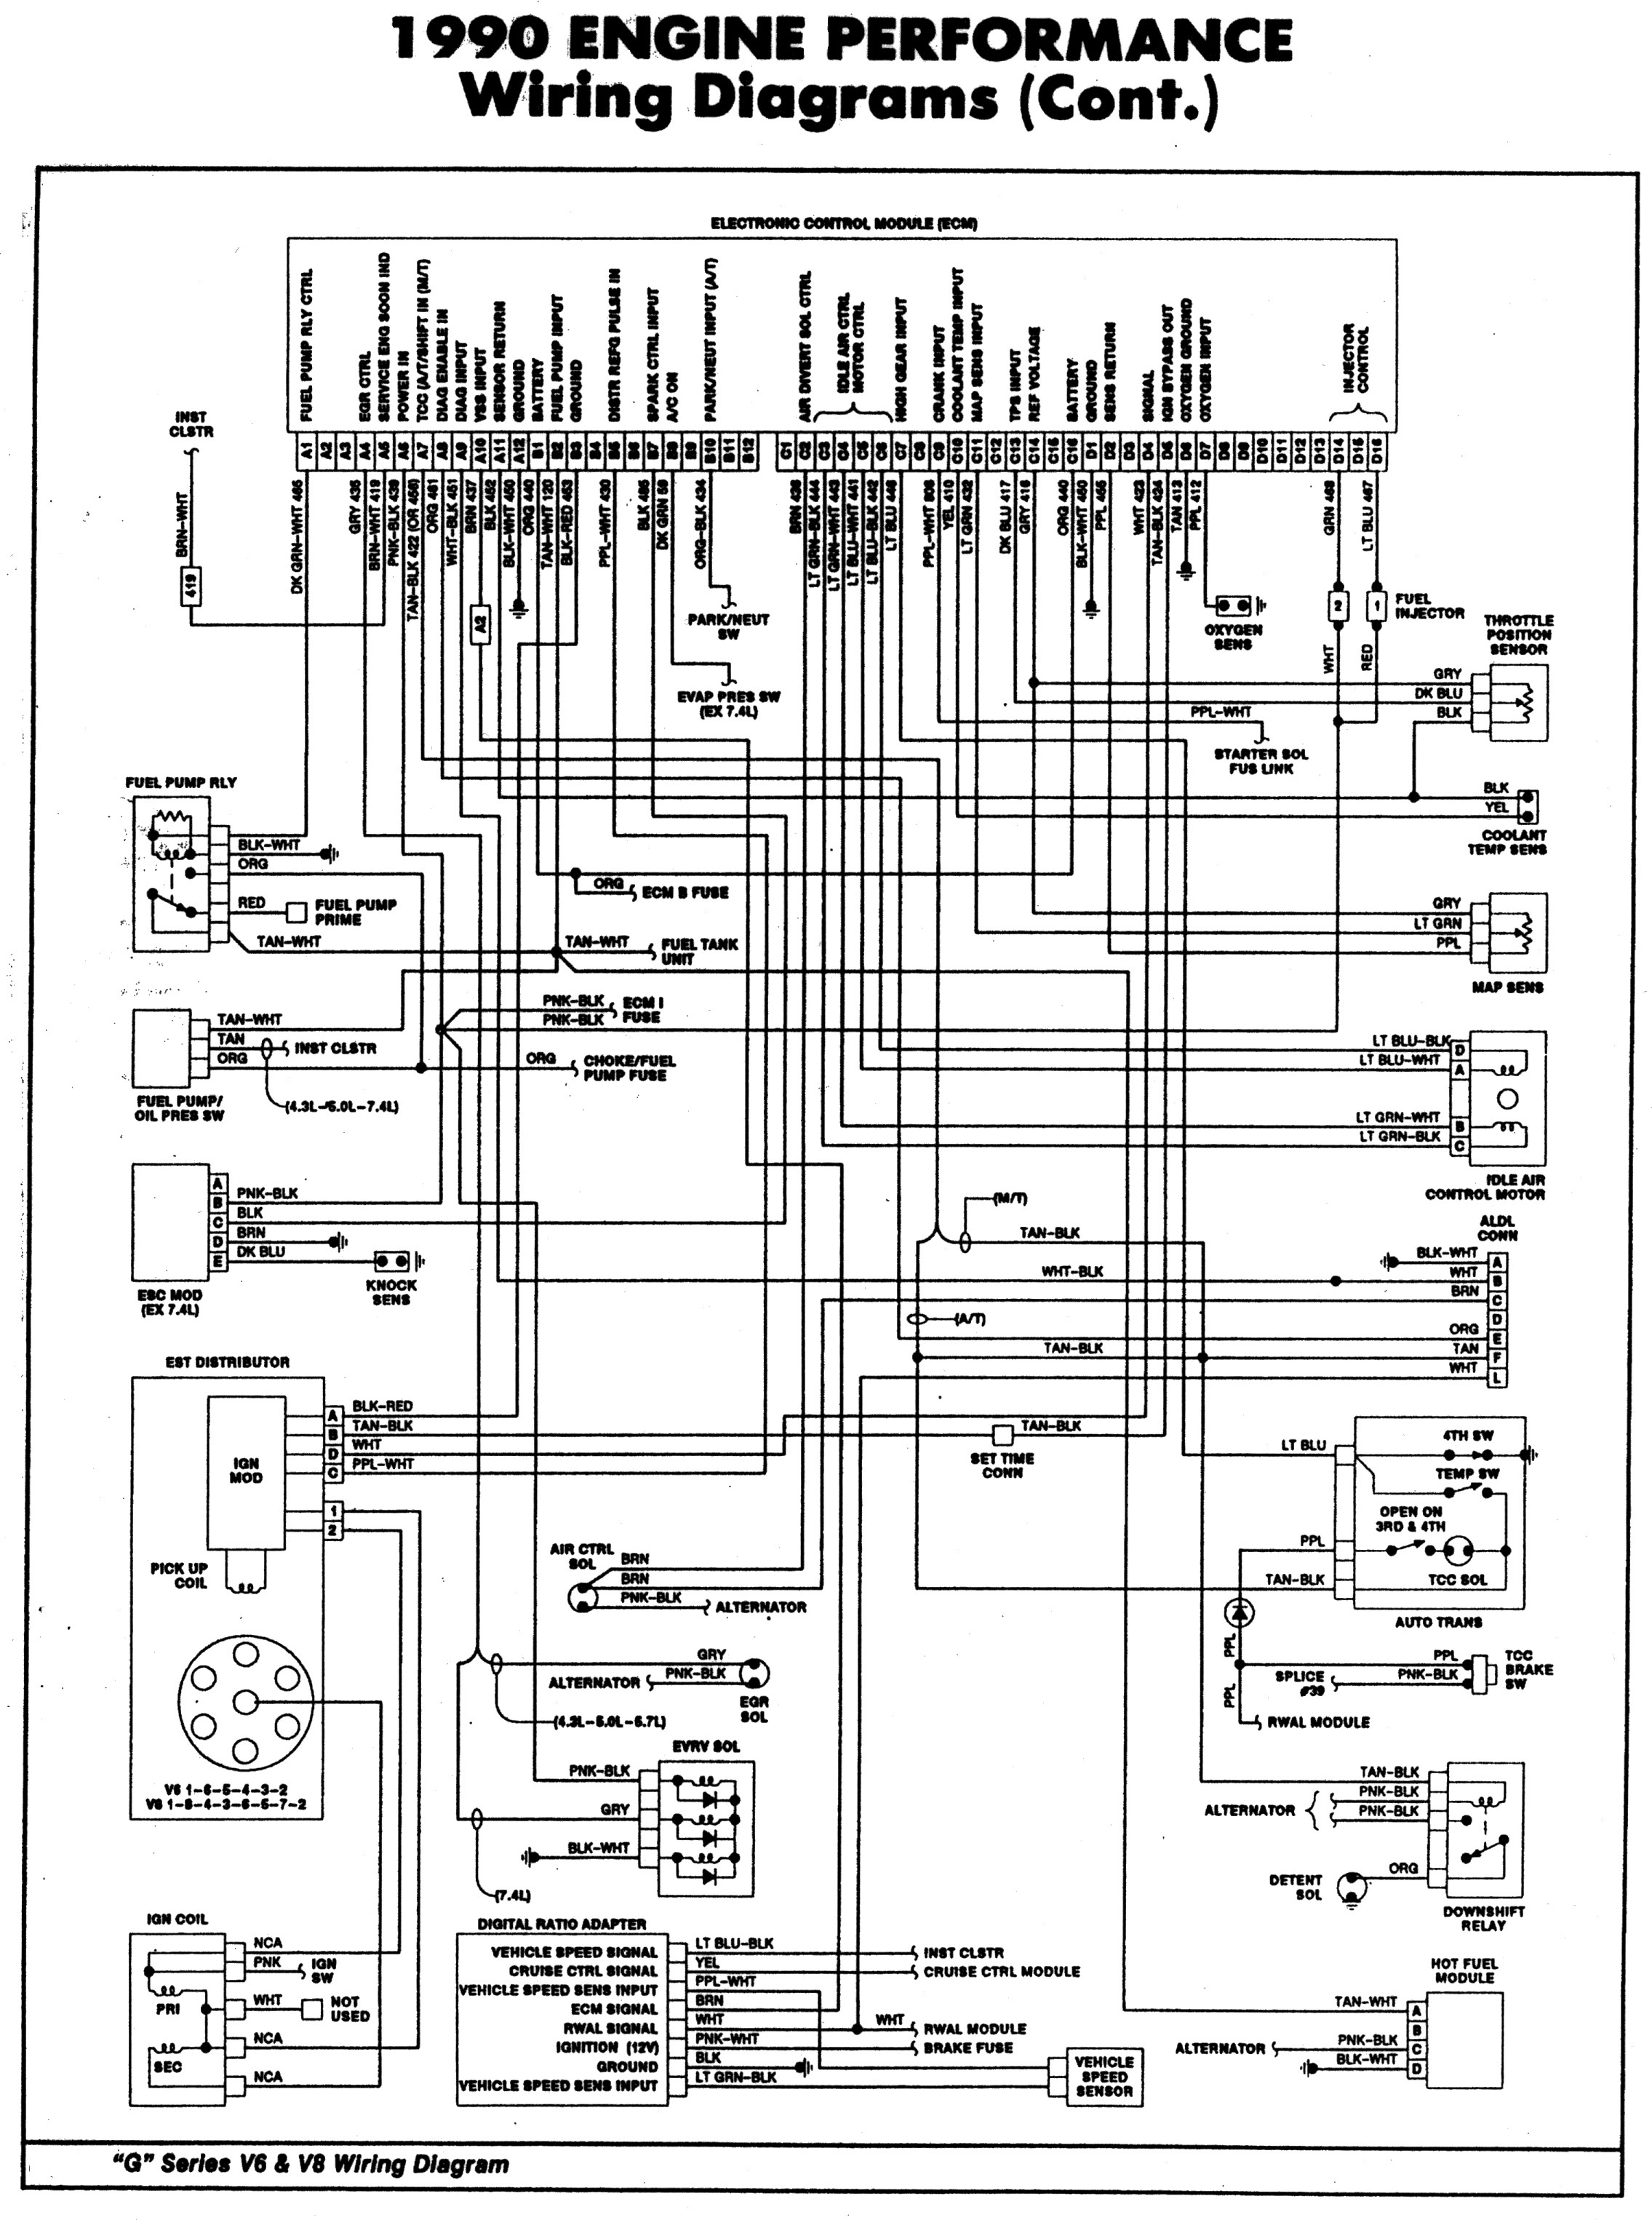 ignitiondiagram 1990 chevy suburban tbi 350 installation land rh pinterest com 1999 Suburban Radio Wiring Diagram 1998 Chevy Suburban Wiring Diagram